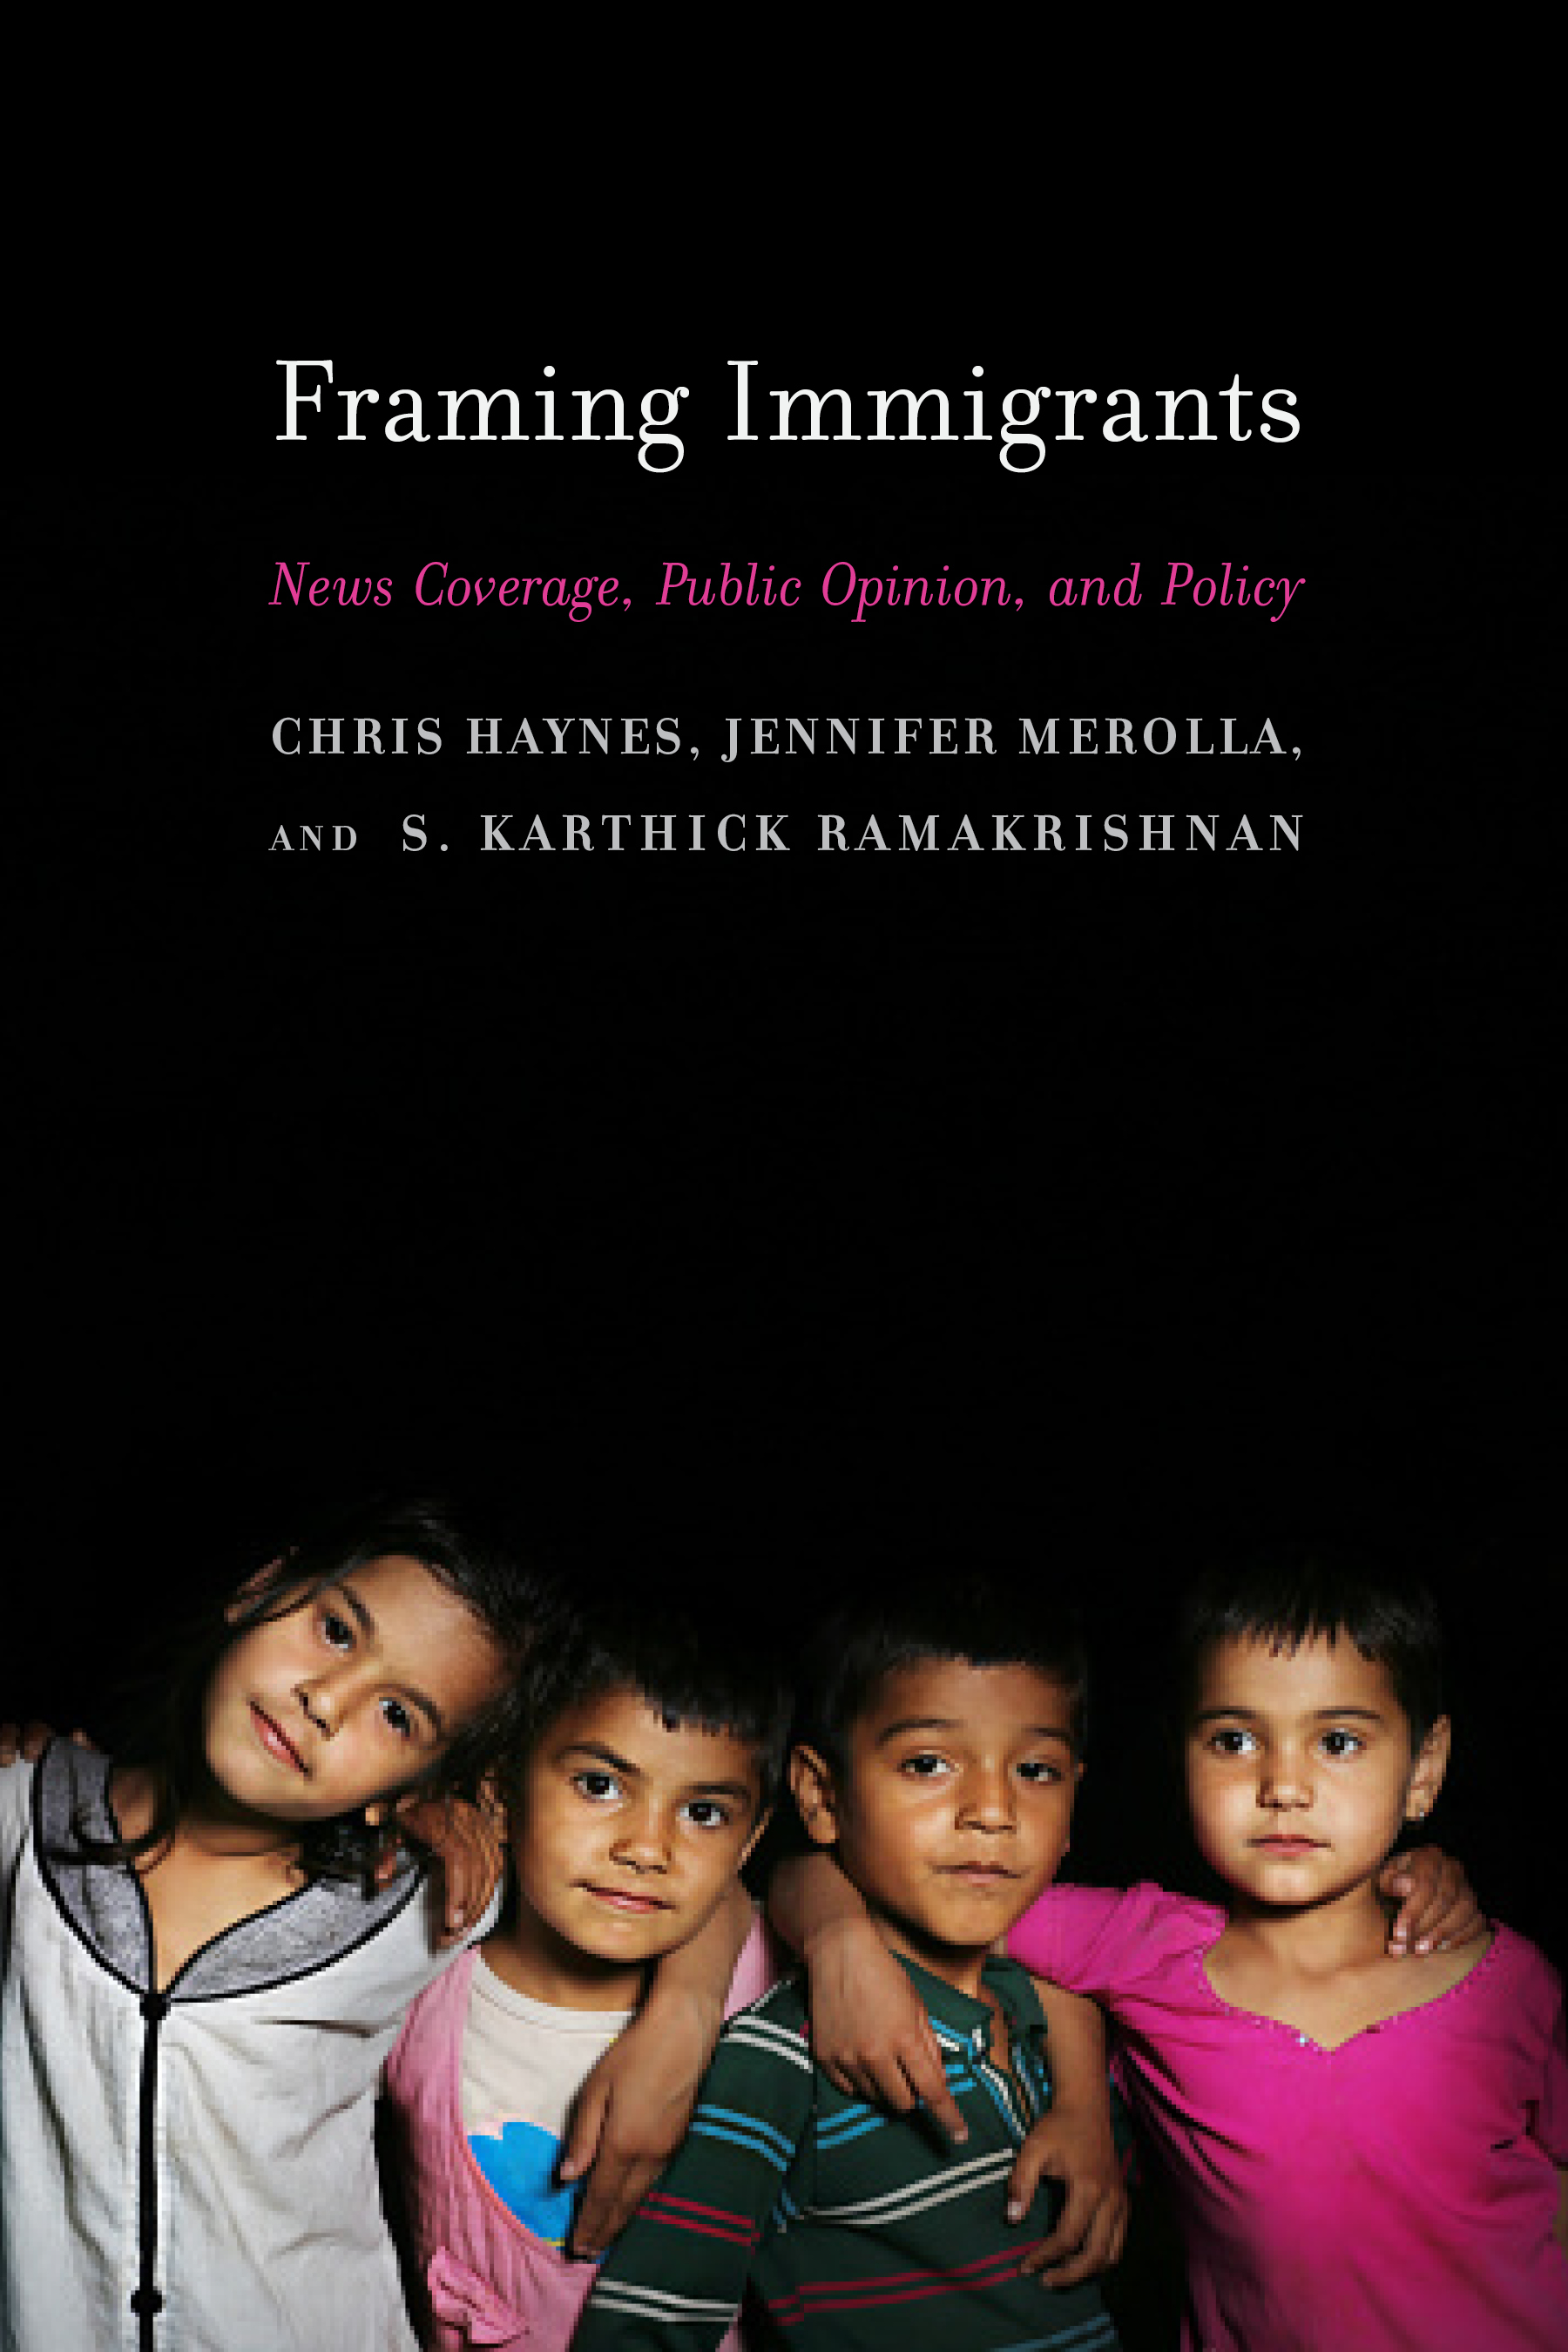 Framing Immigrants: News Coverage, Public Opinion, and Policy